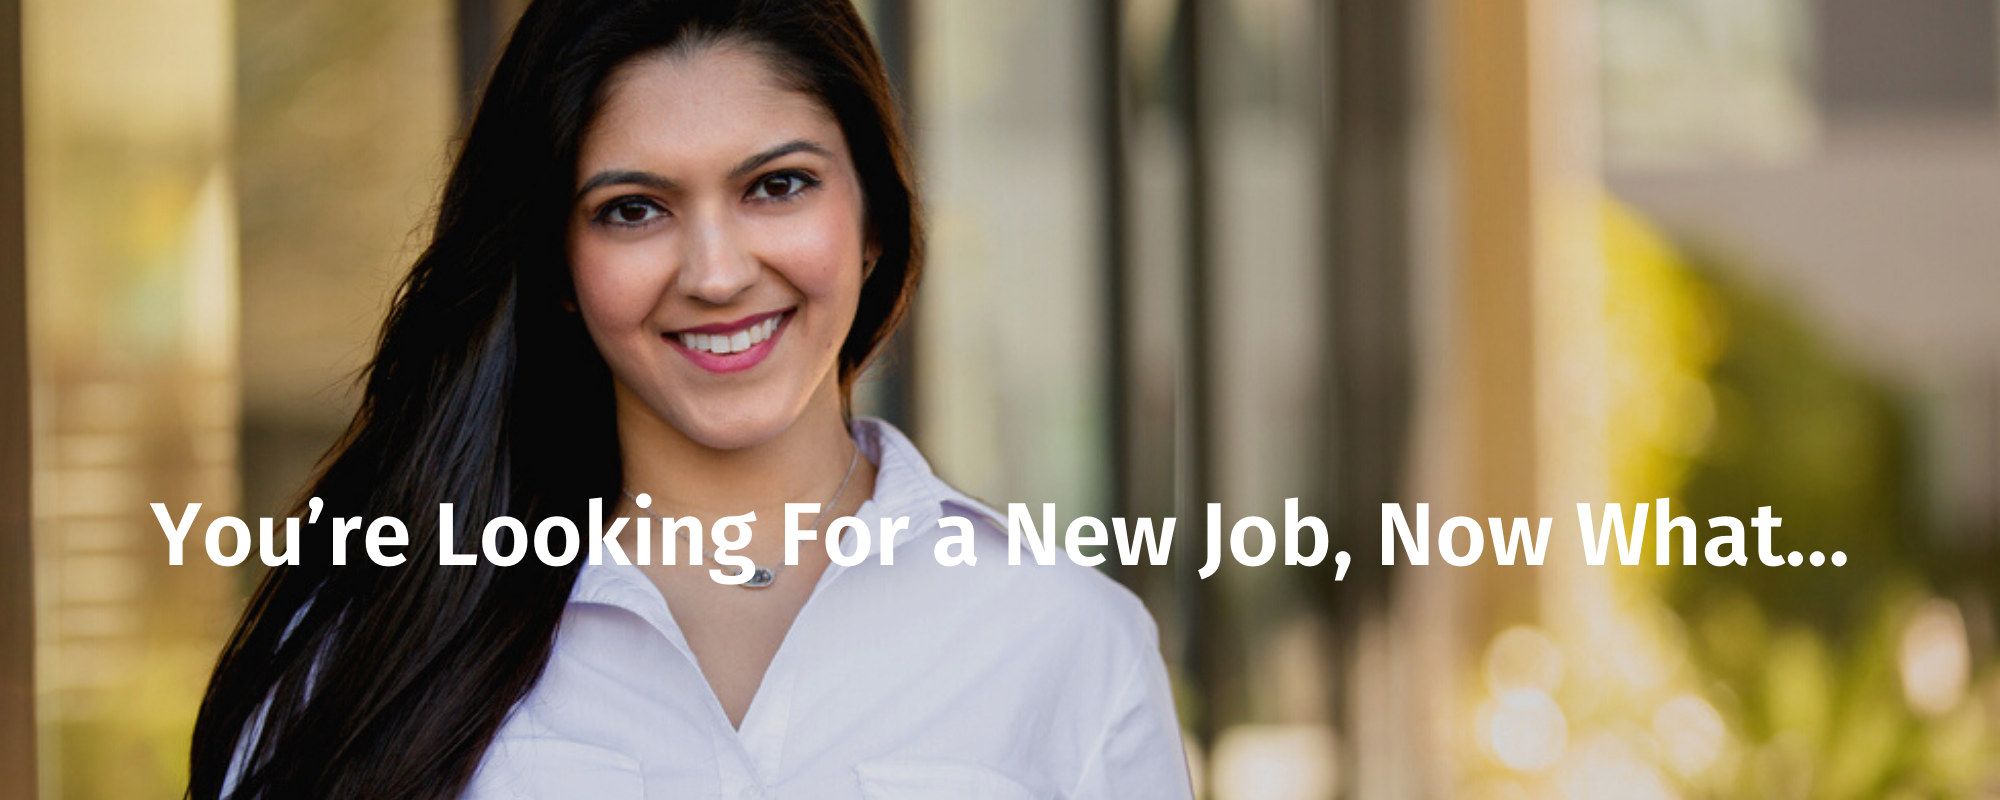 You're Looking For a New Job, Now What…